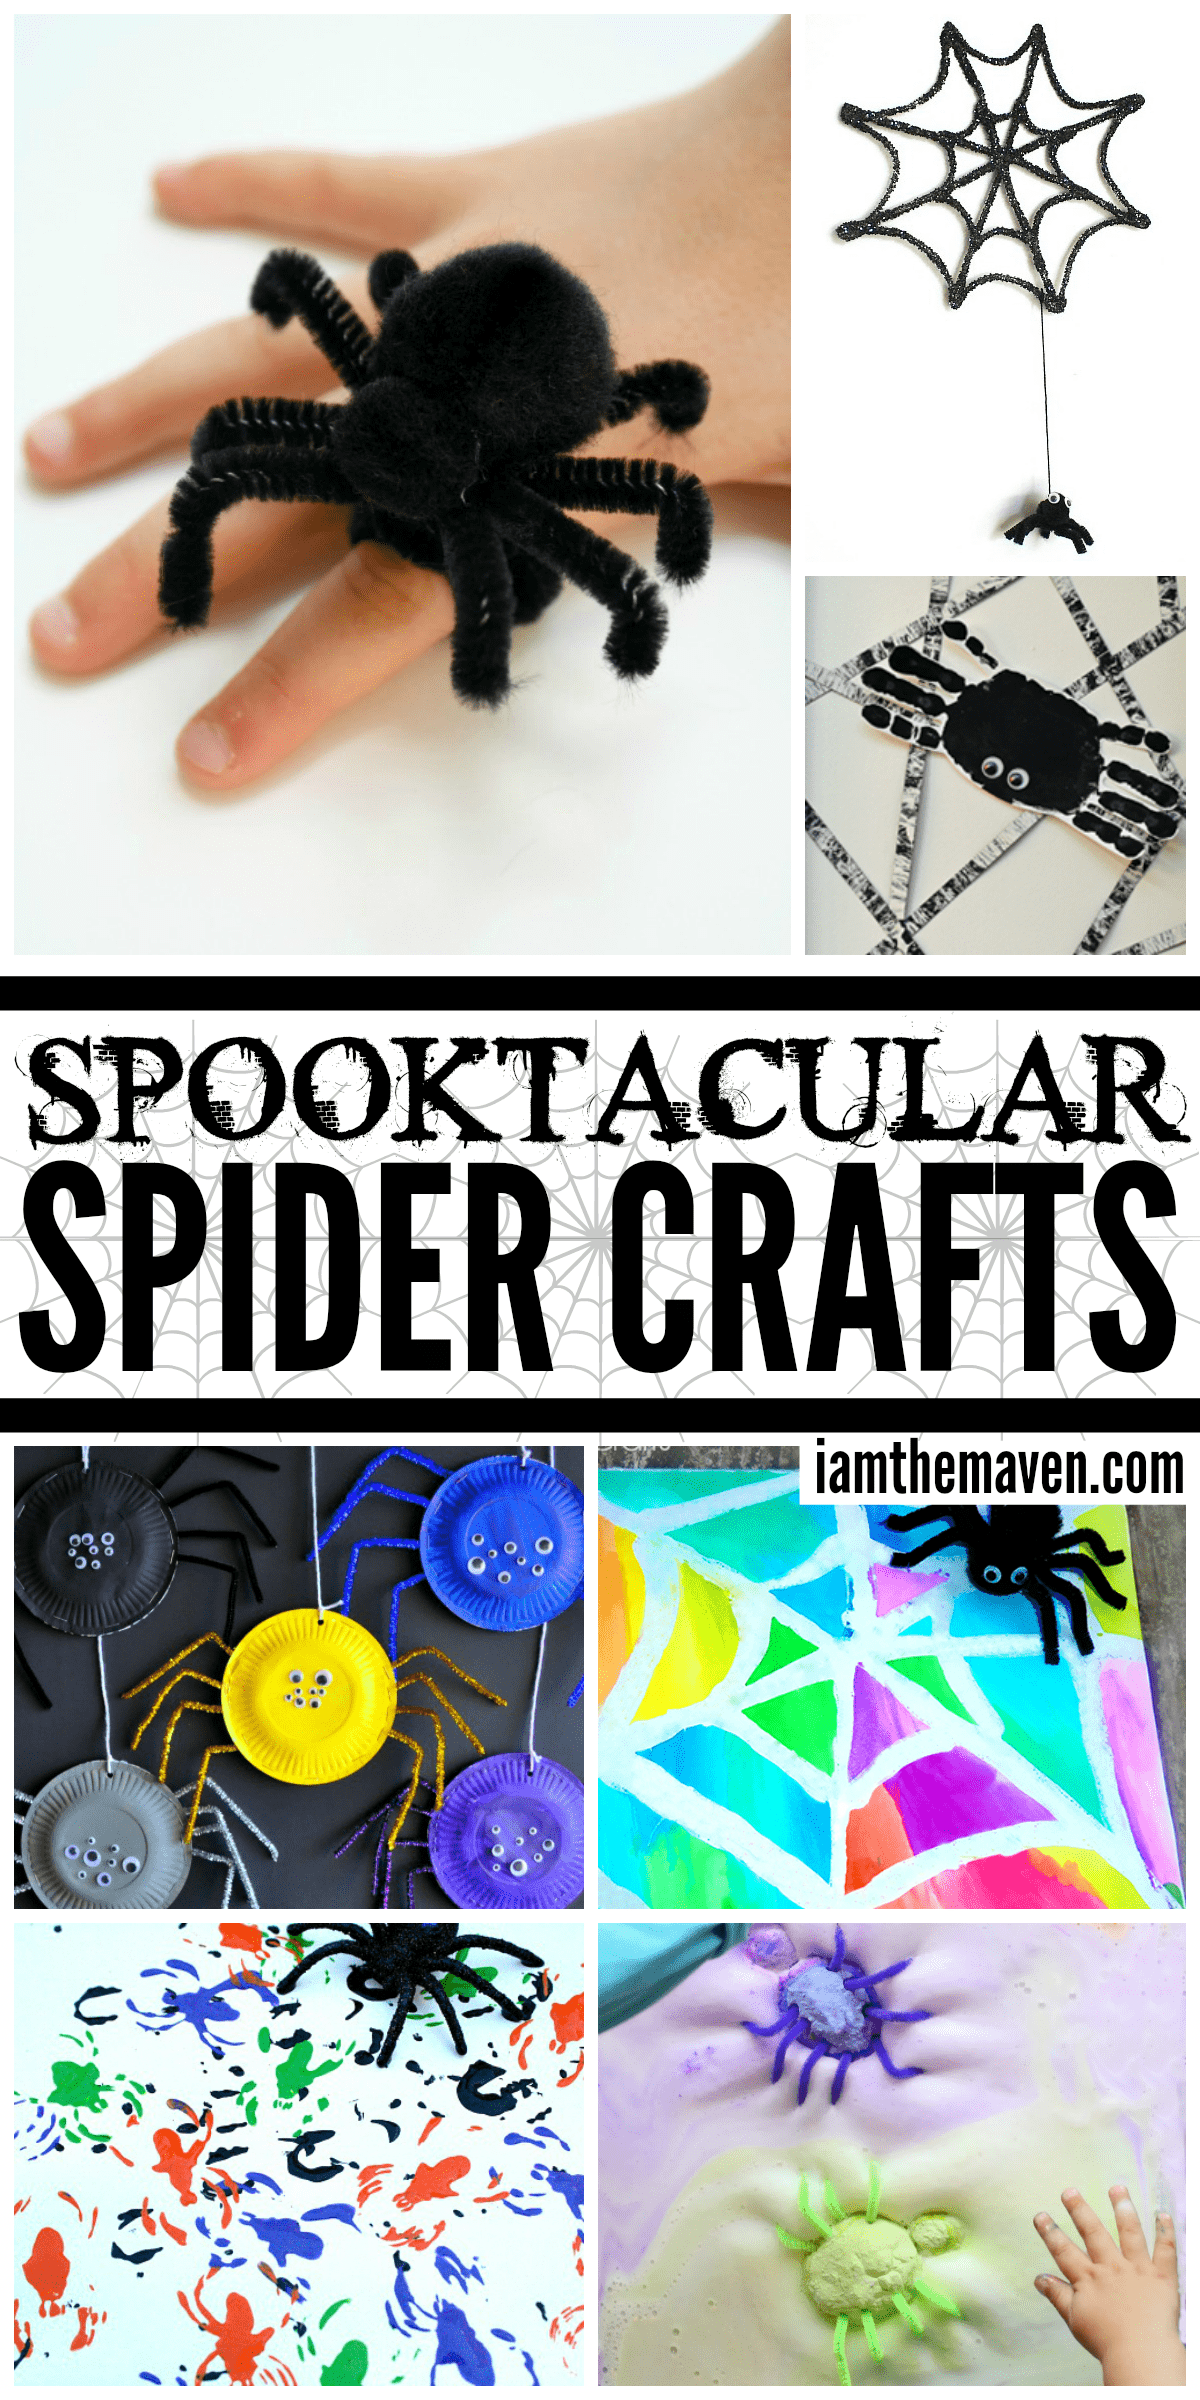 Spider Crafts for Kids